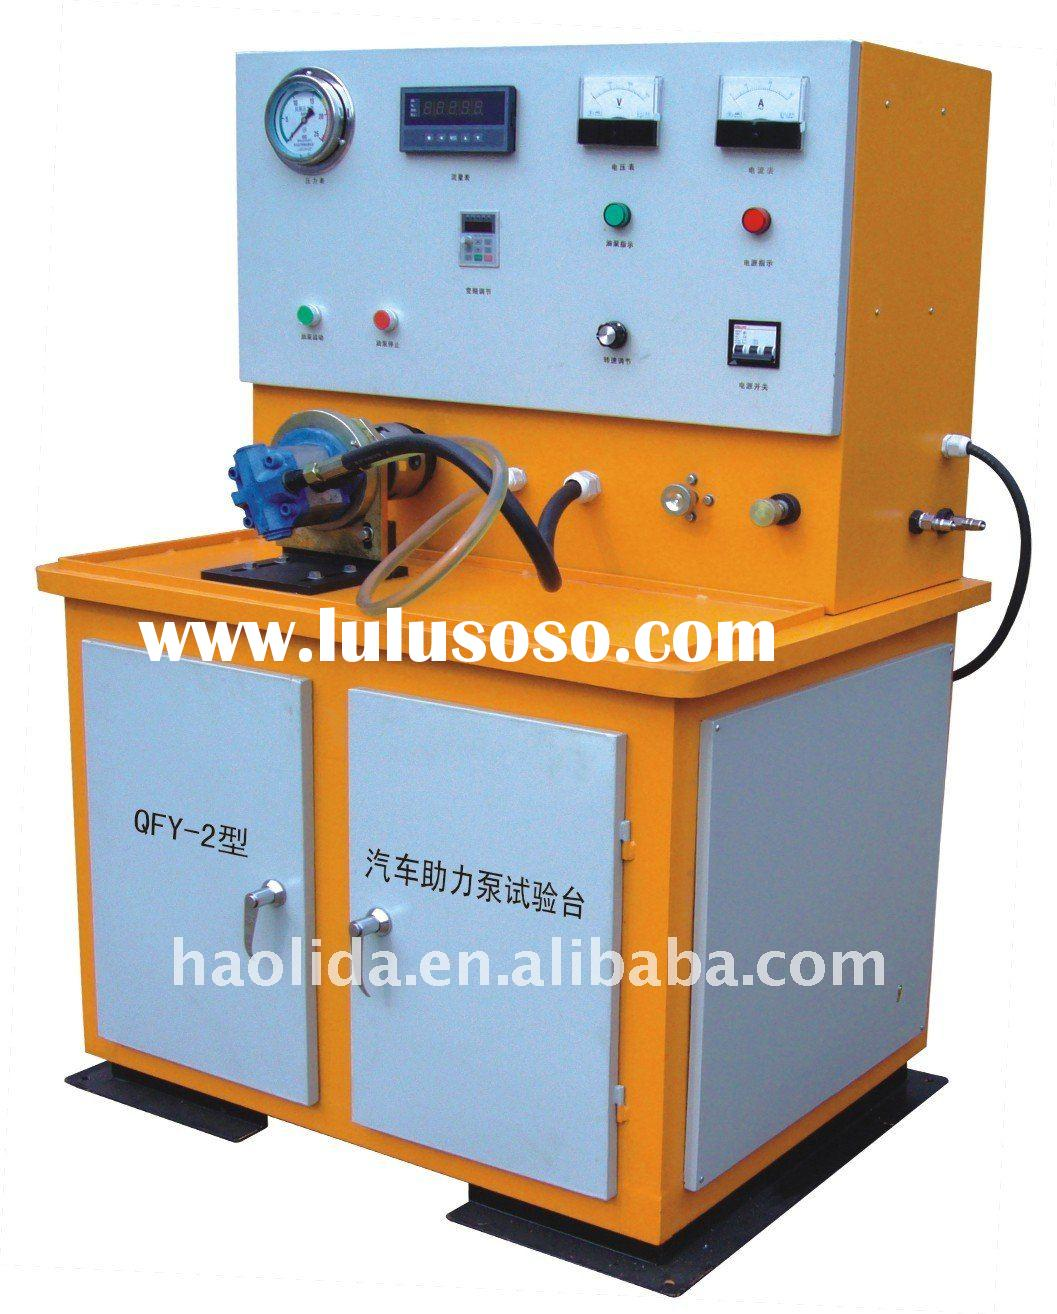 Automobile Power Steering Pump Test Bench QFY-2 Model (china)